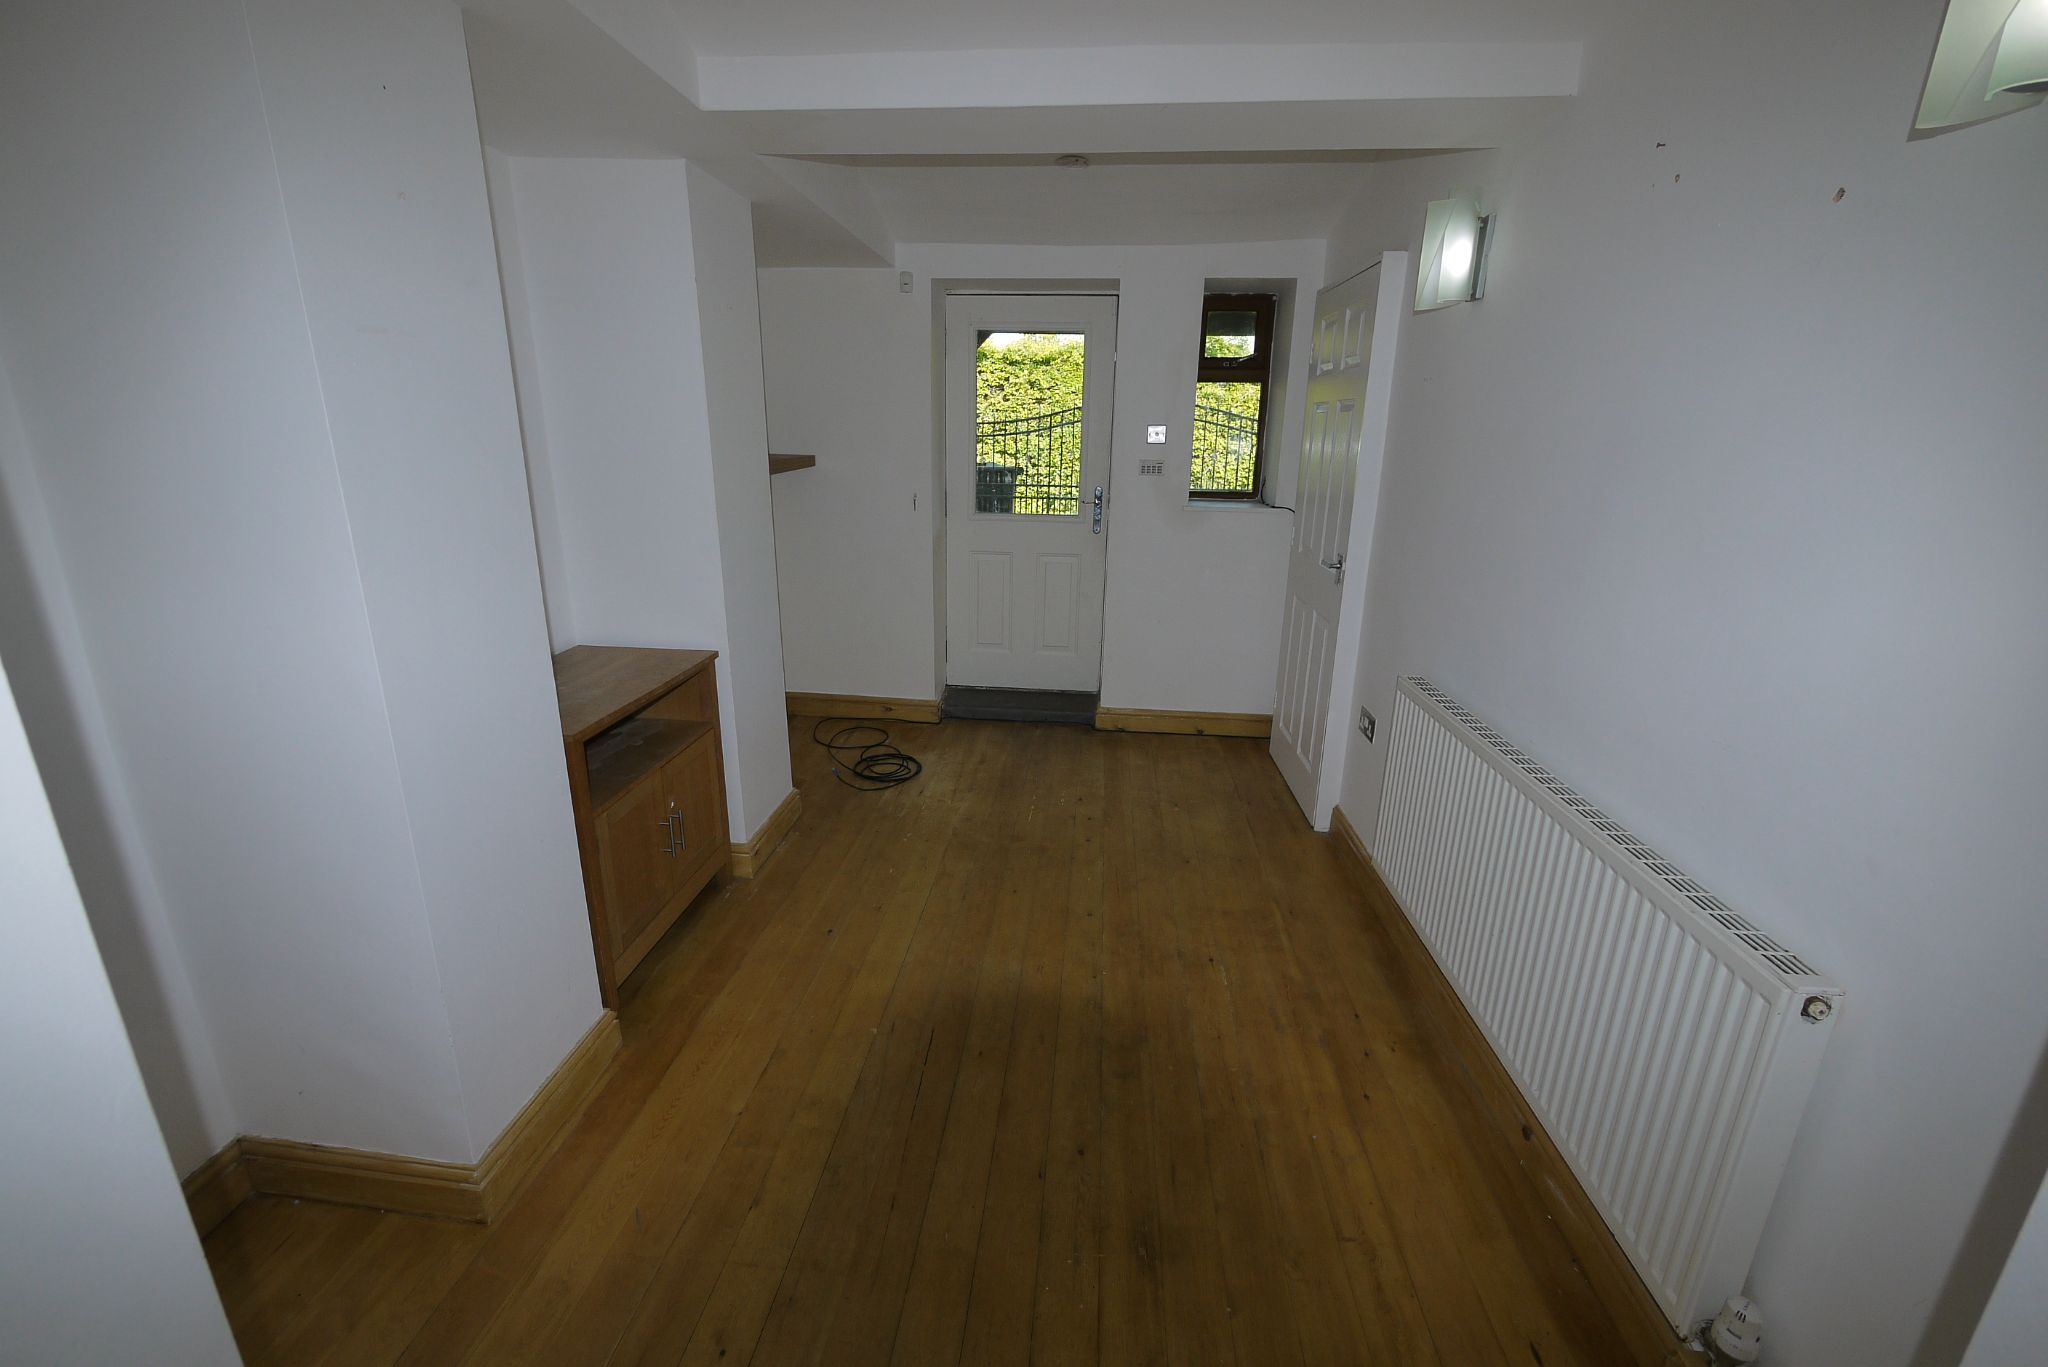 3 bedroom mid terraced house SSTC in Bradford - Photograph 6.